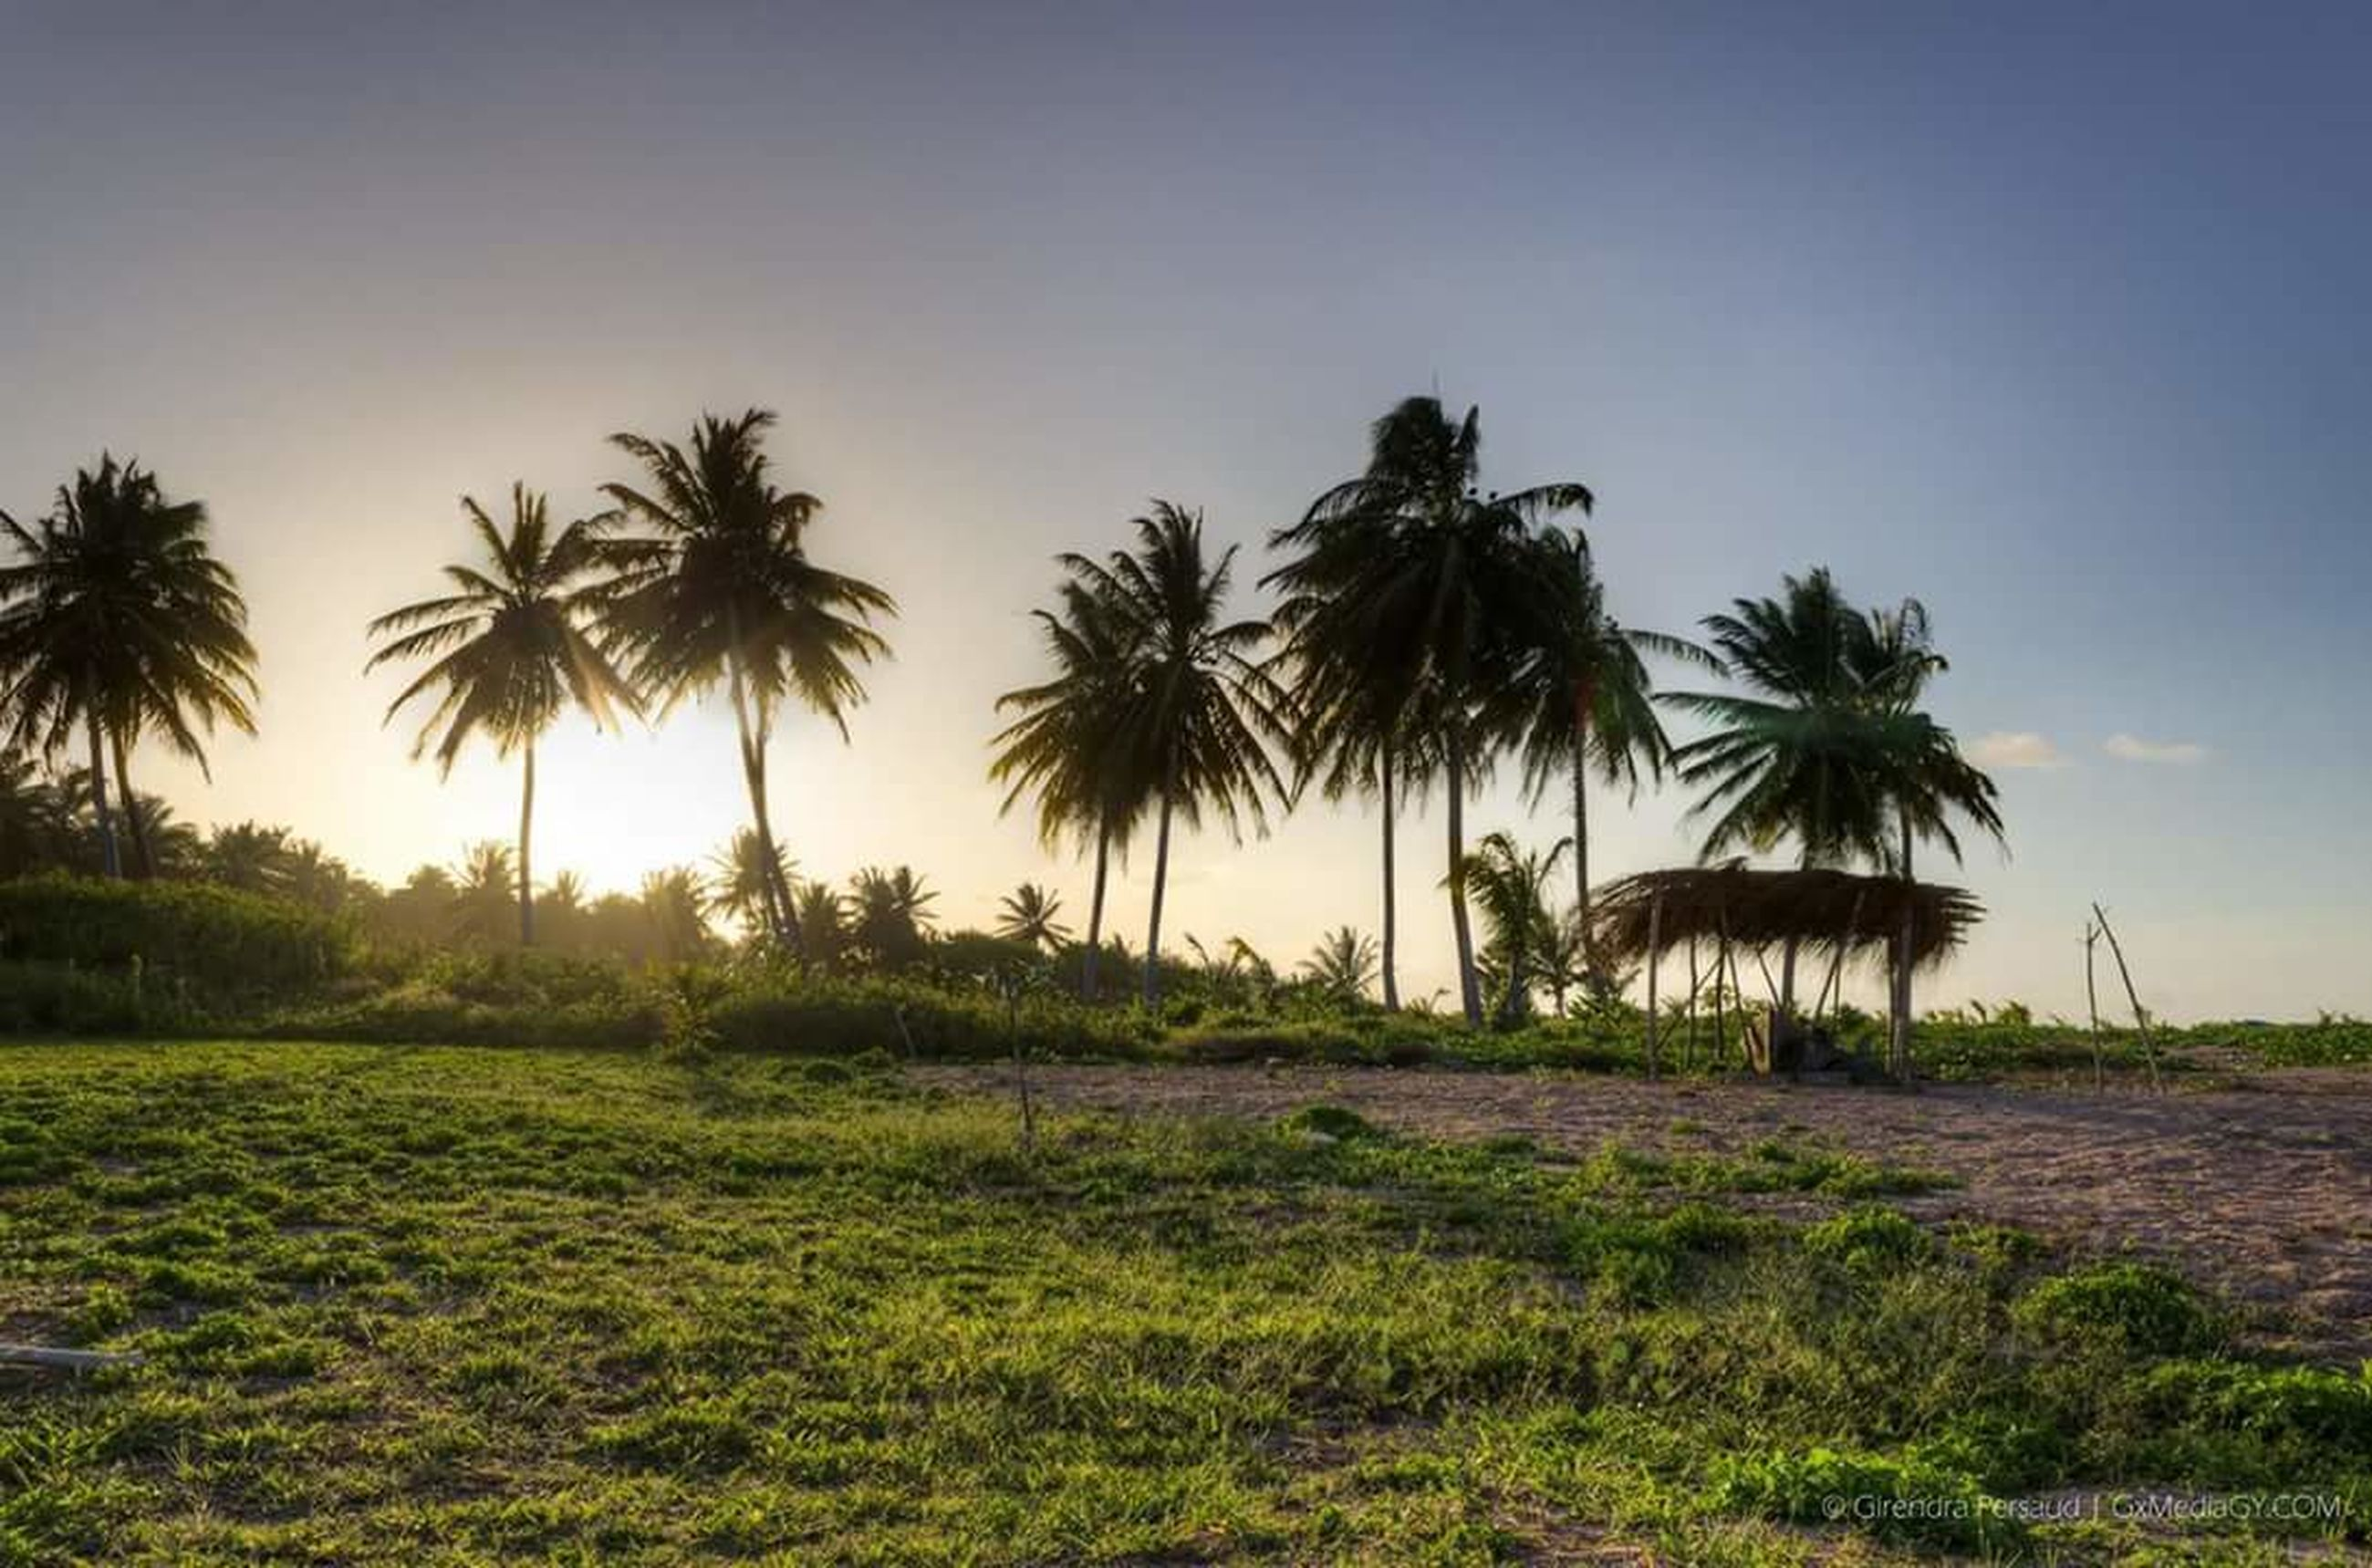 palm tree, landscape, sunset, agriculture, tree, nature, growth, scenics, rice paddy, travel destinations, outdoors, no people, tropical climate, beauty in nature, sky, water, day